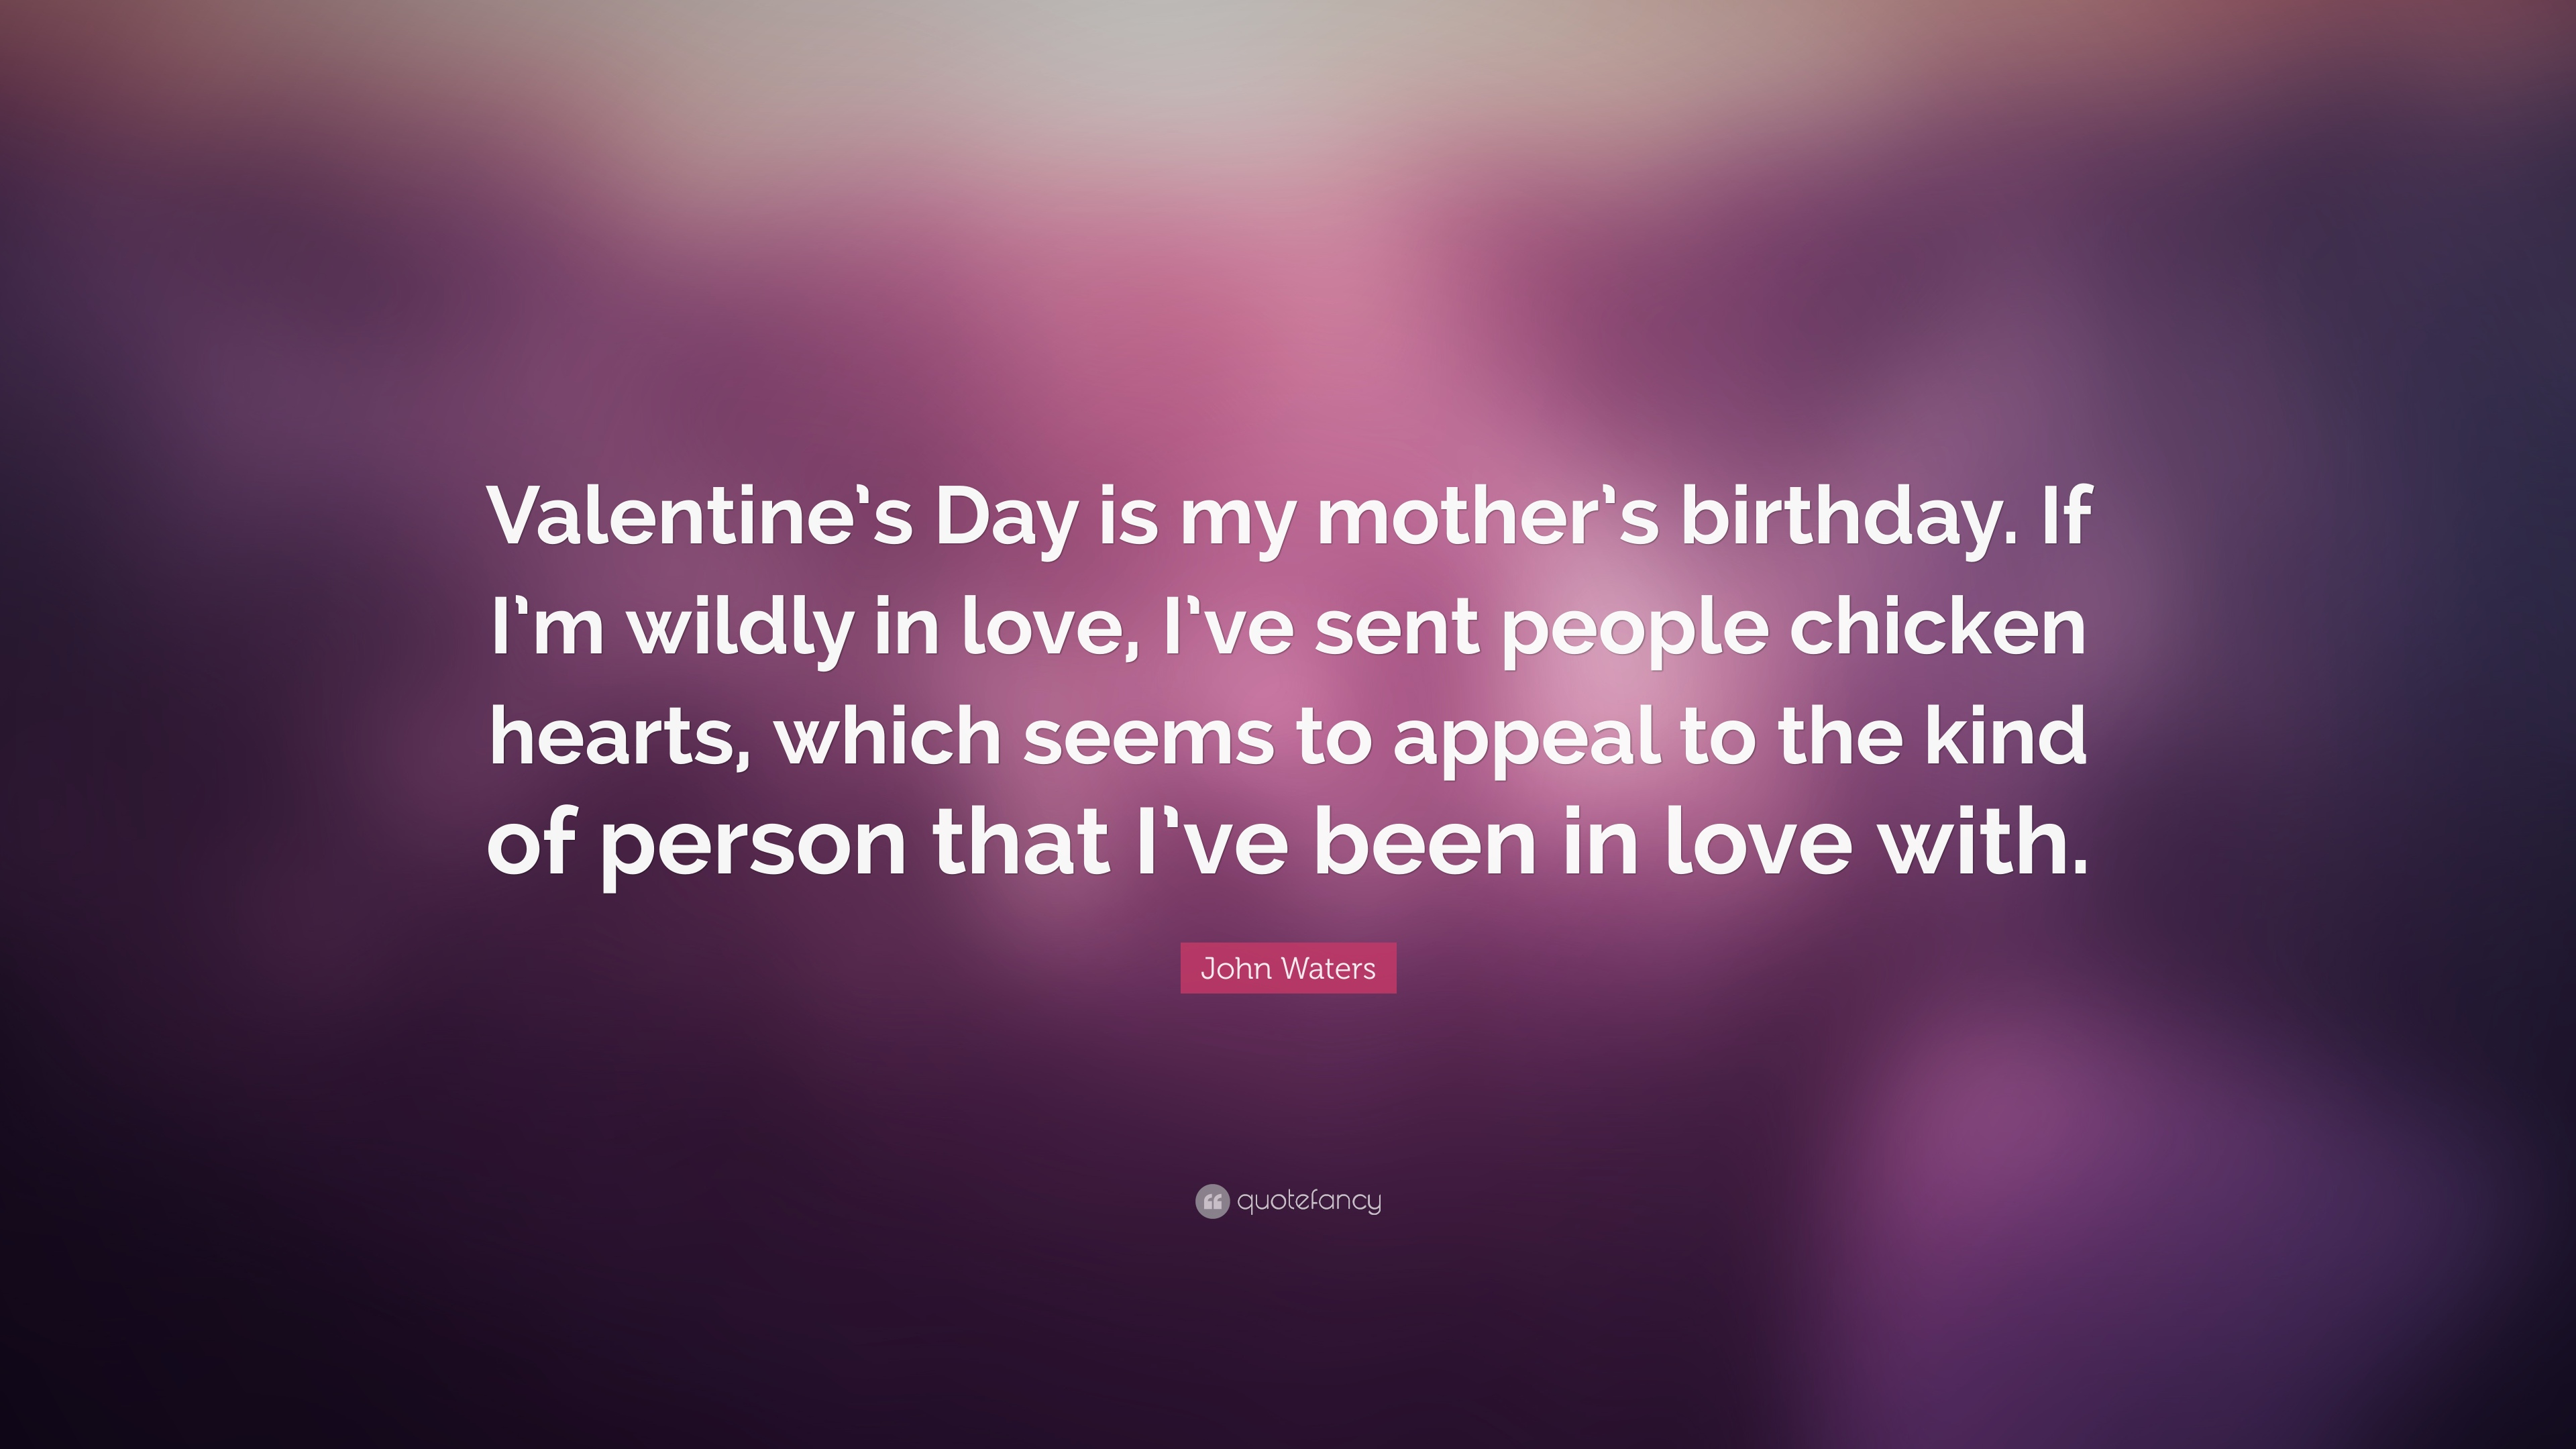 john waters quote valentine s day is my mother s birthday if i m